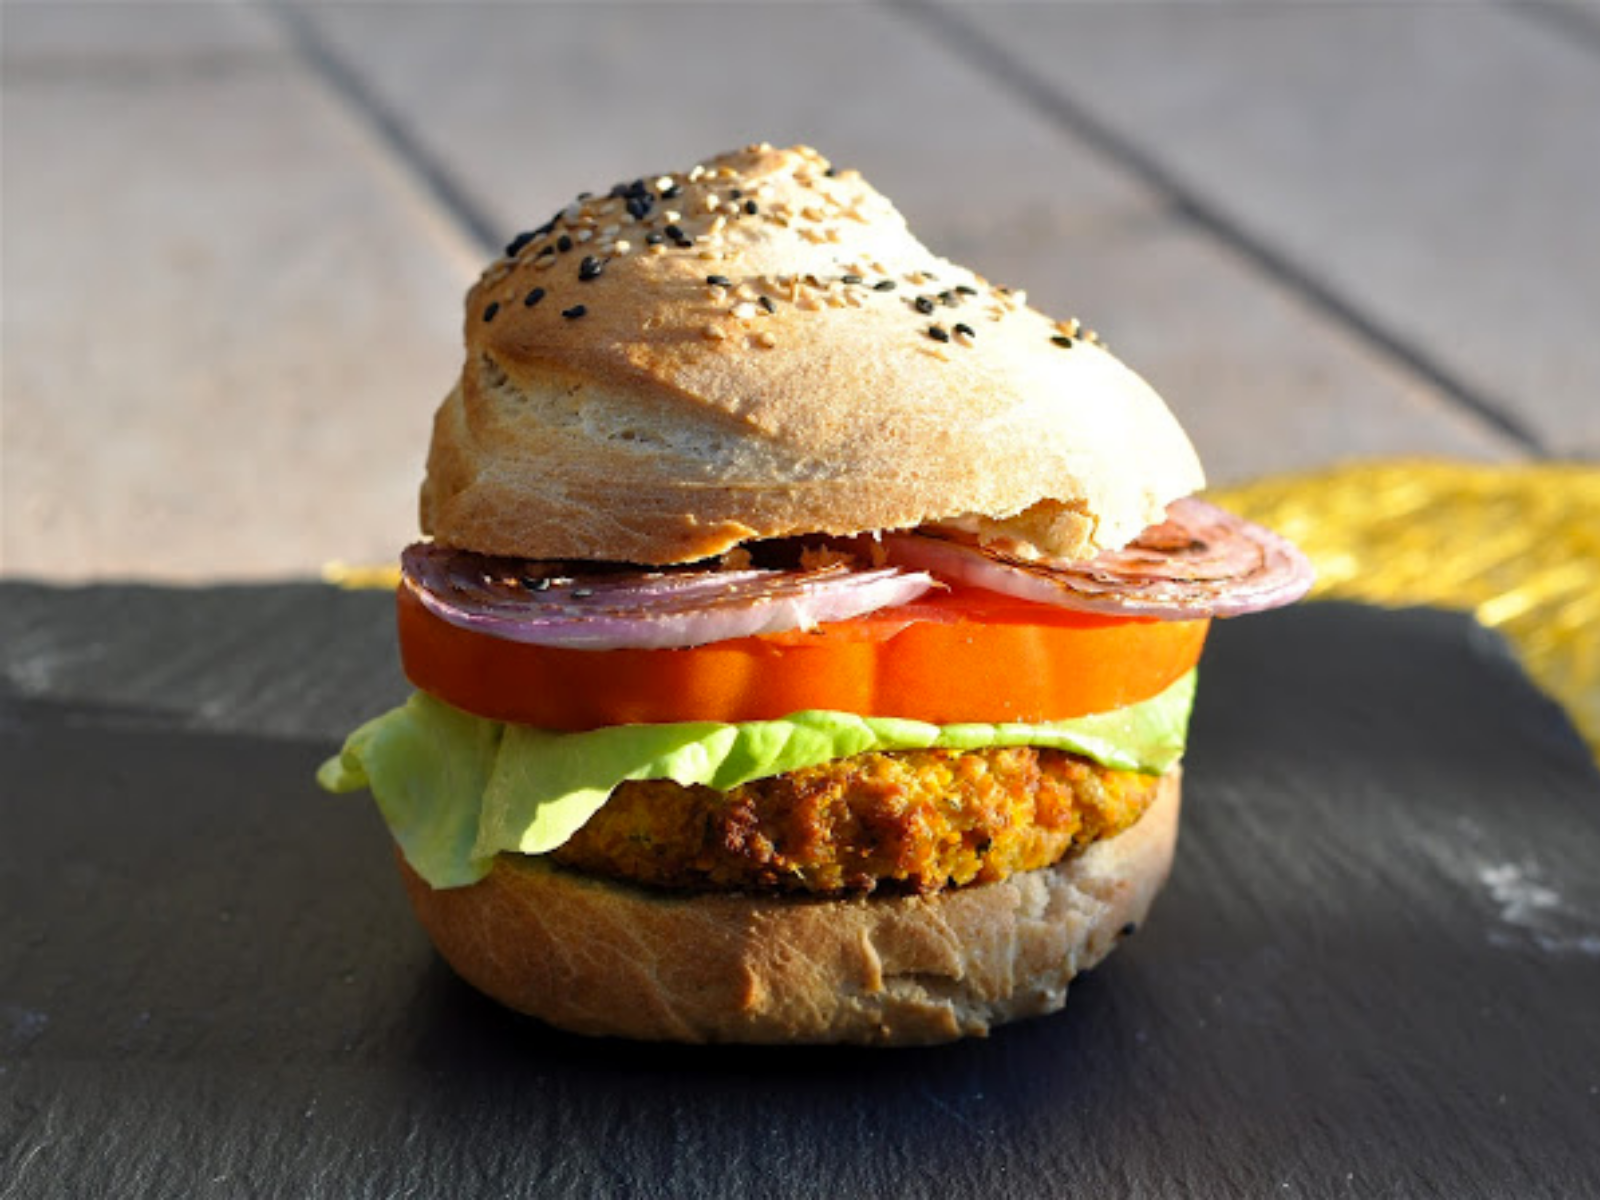 Vegan Soy Burger With Homemade Bun